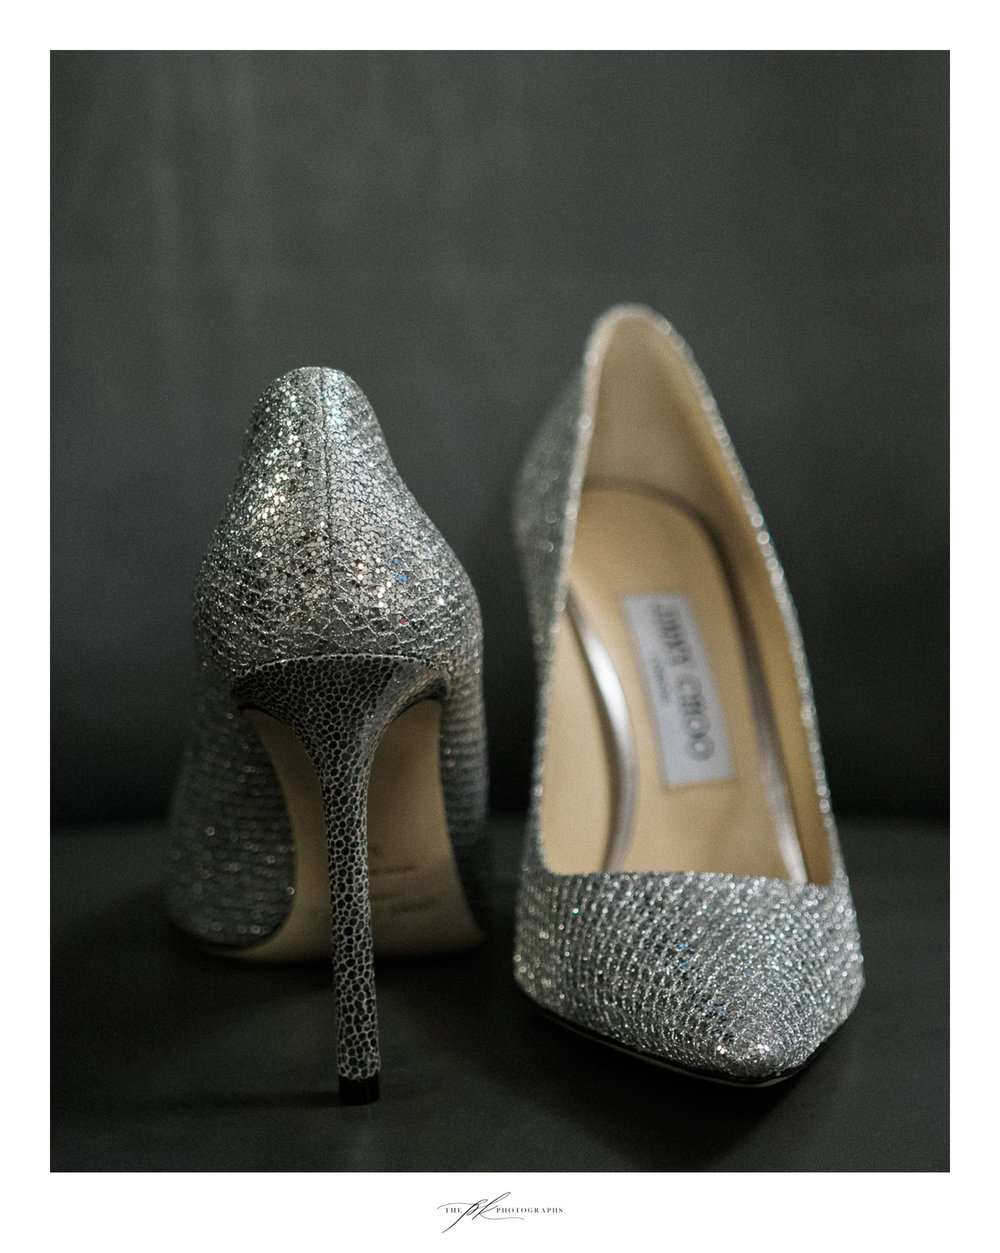 Jimmy Choo silver bridal shoes.